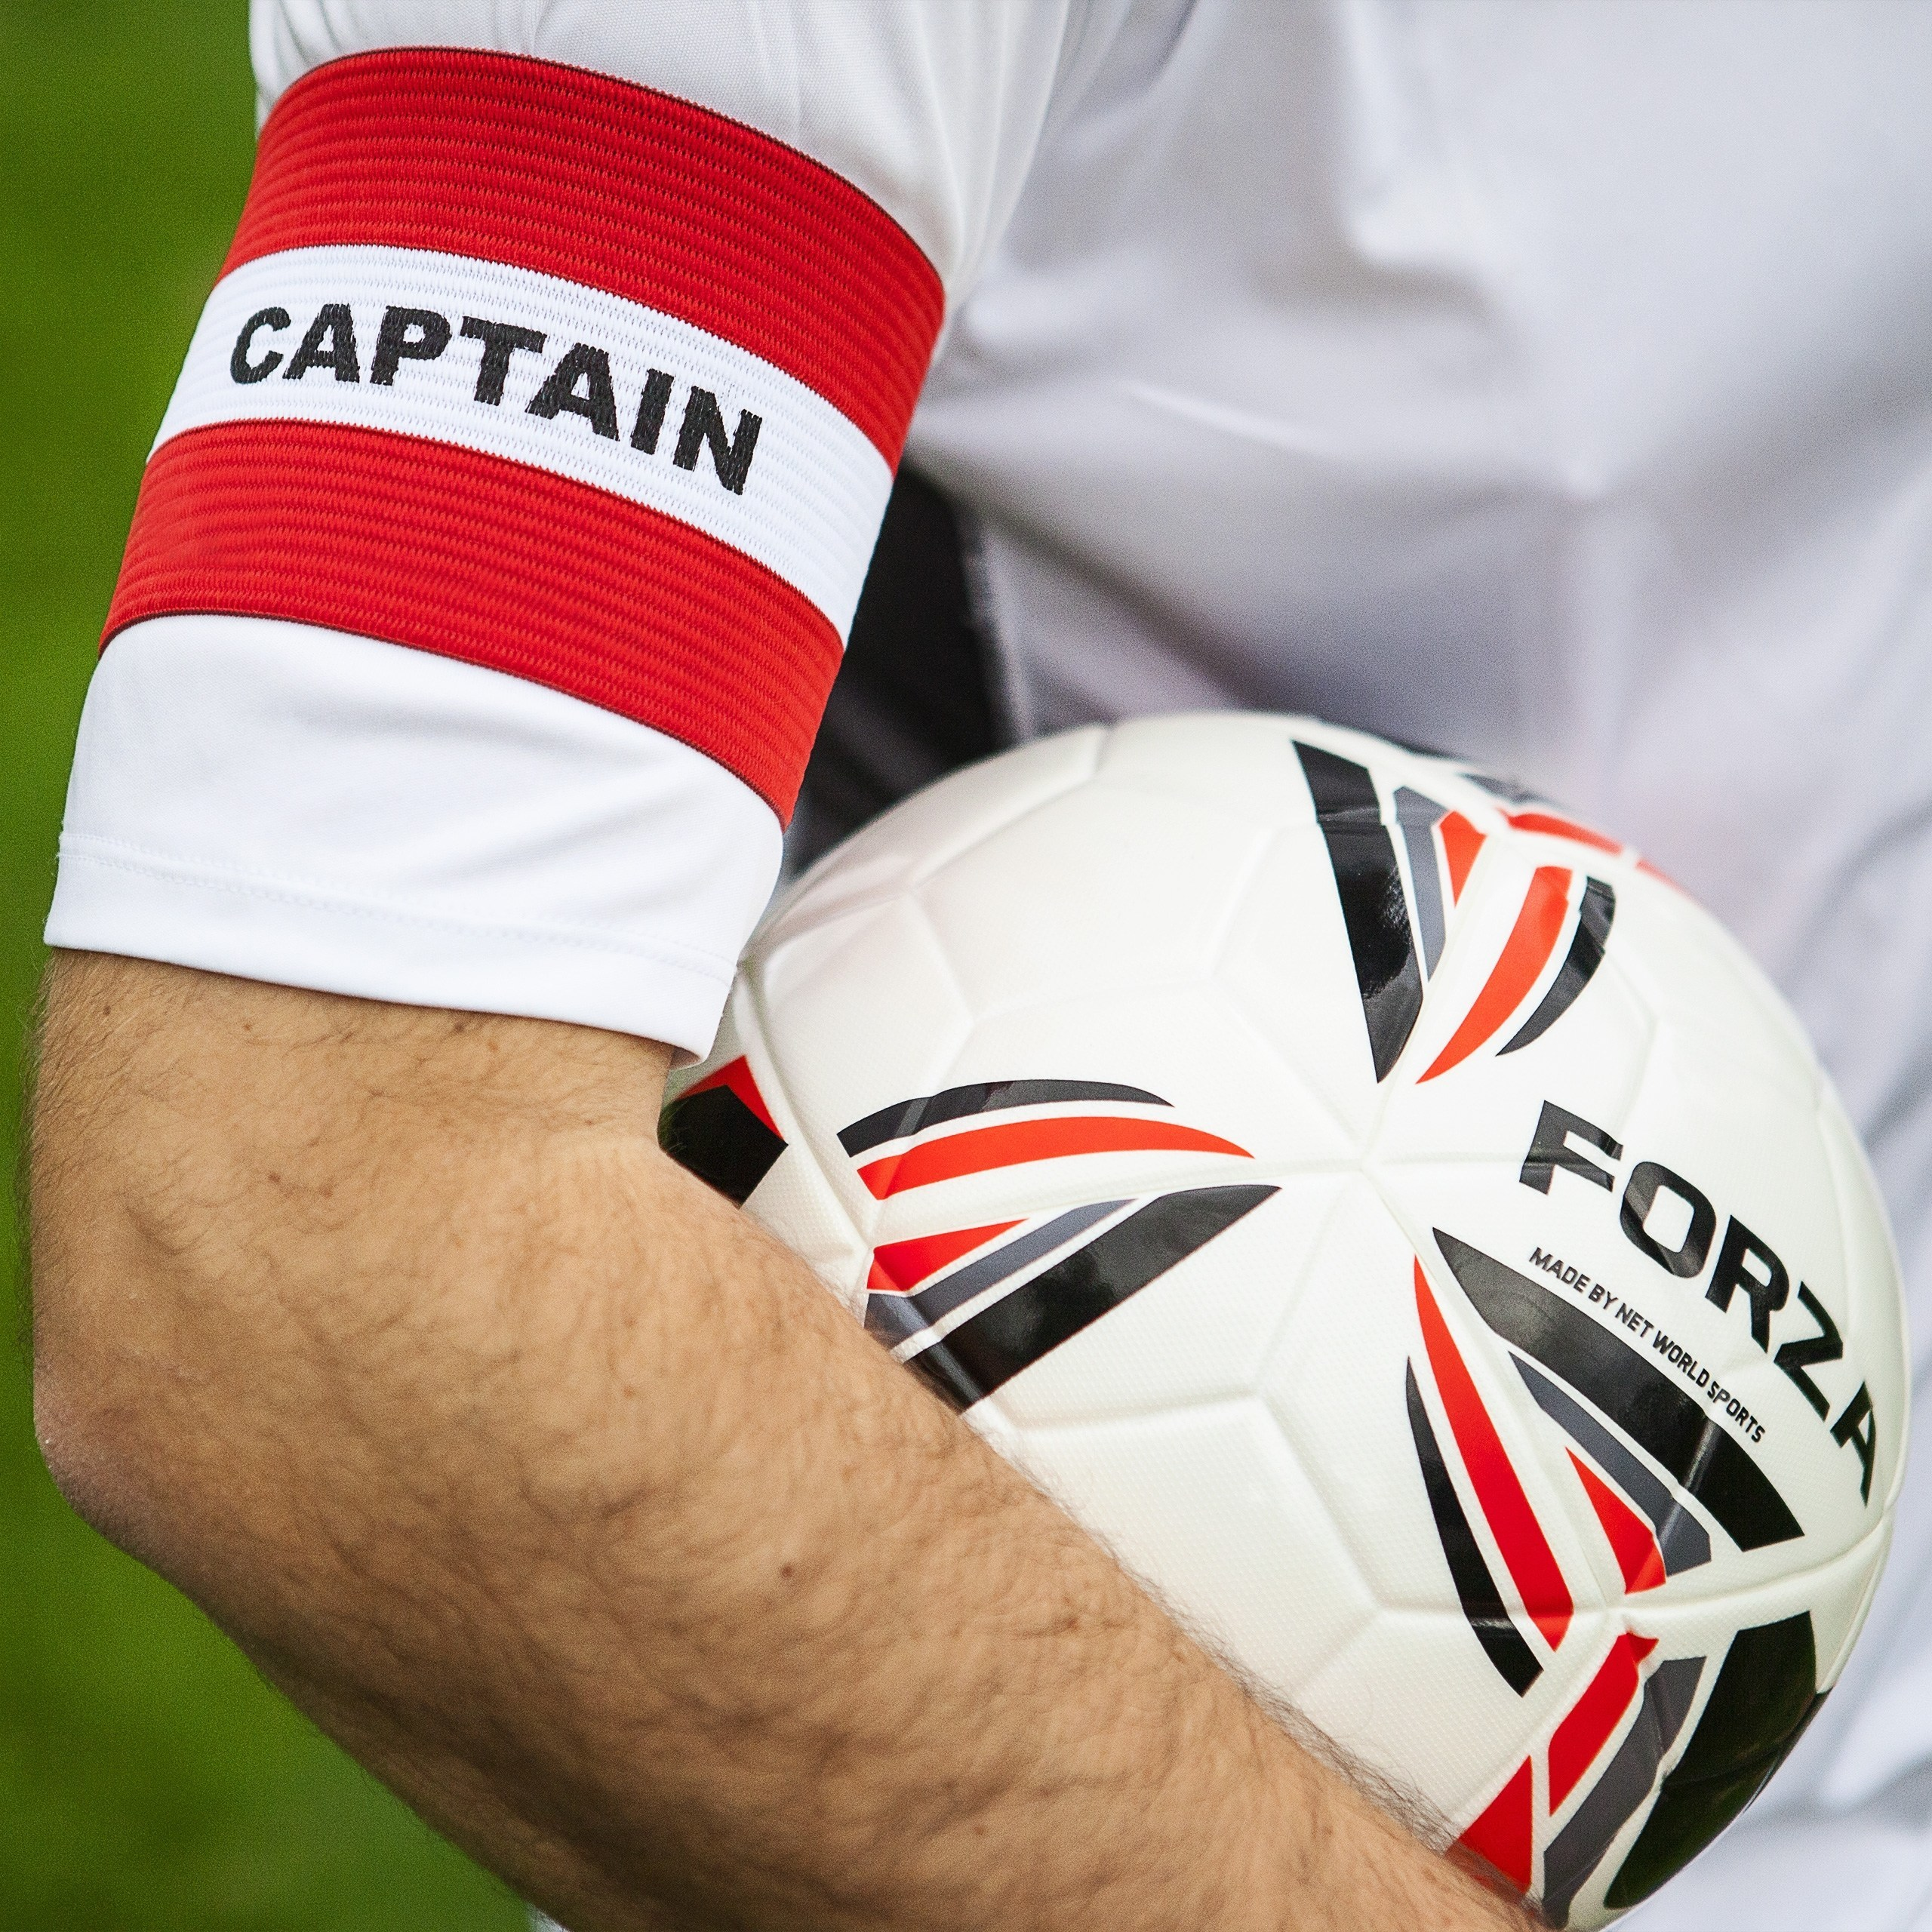 Red Captains Armbands